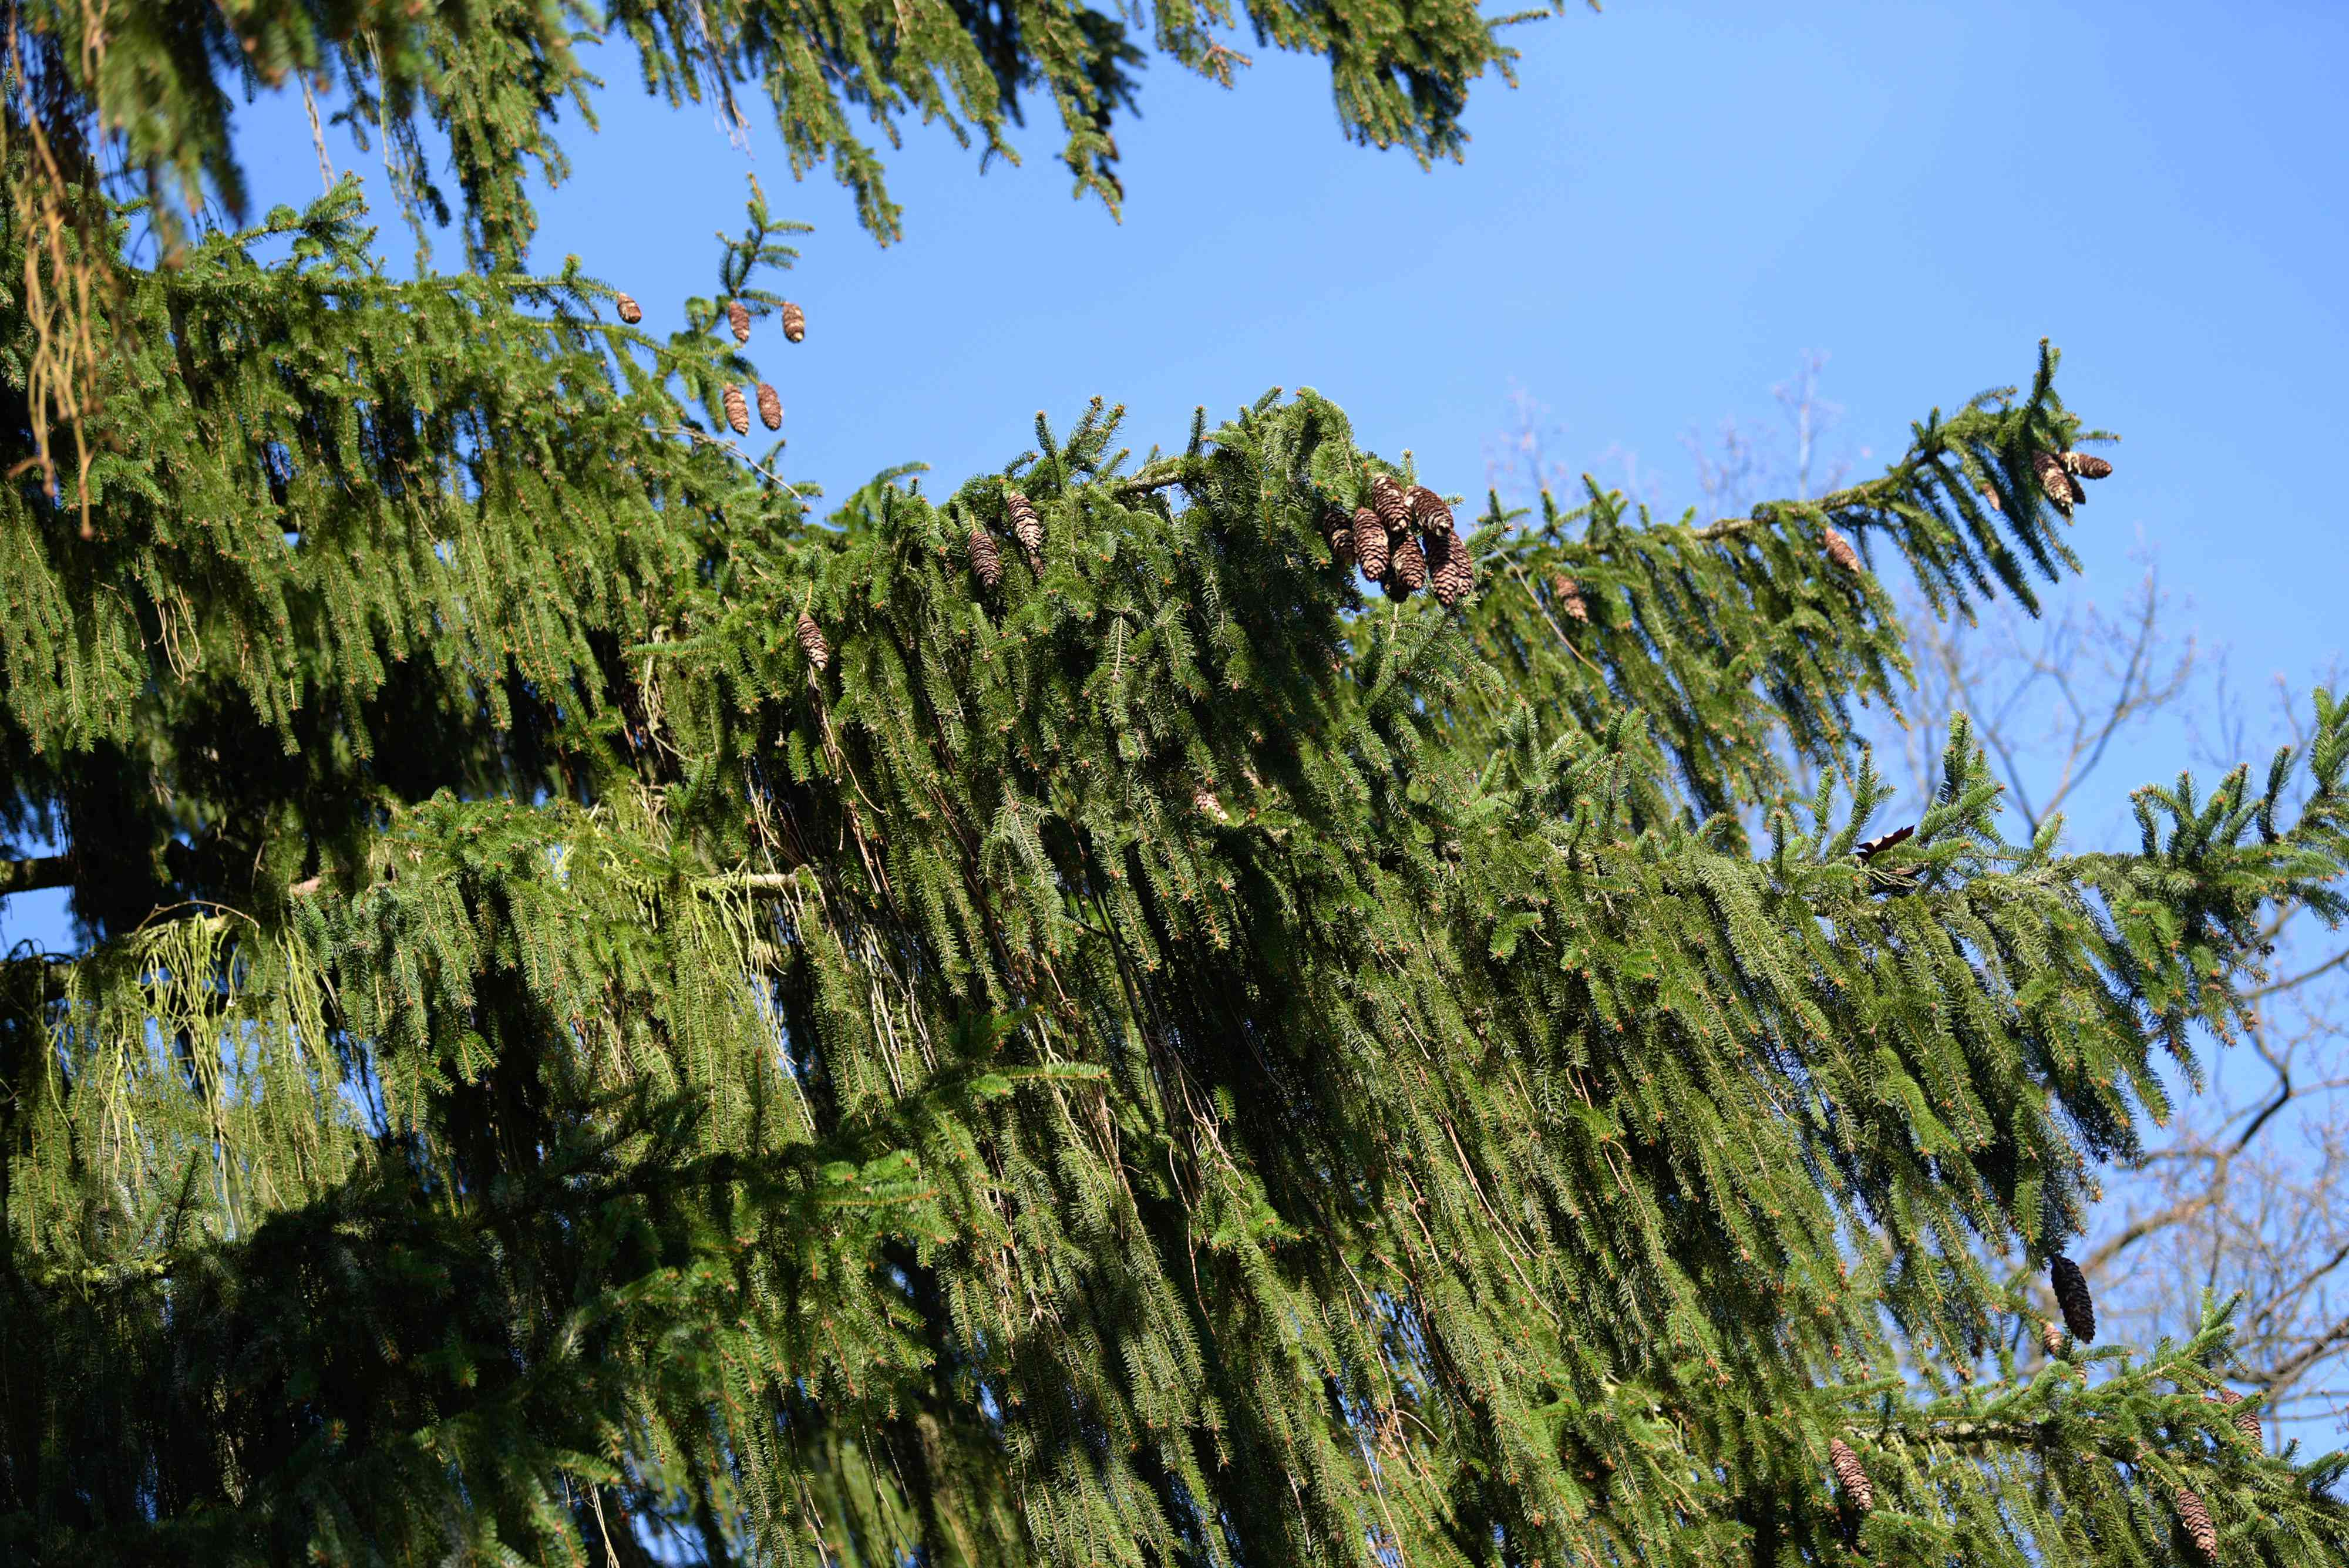 Norway spruce tree with weeping branches with pinecones at ends against blue sky